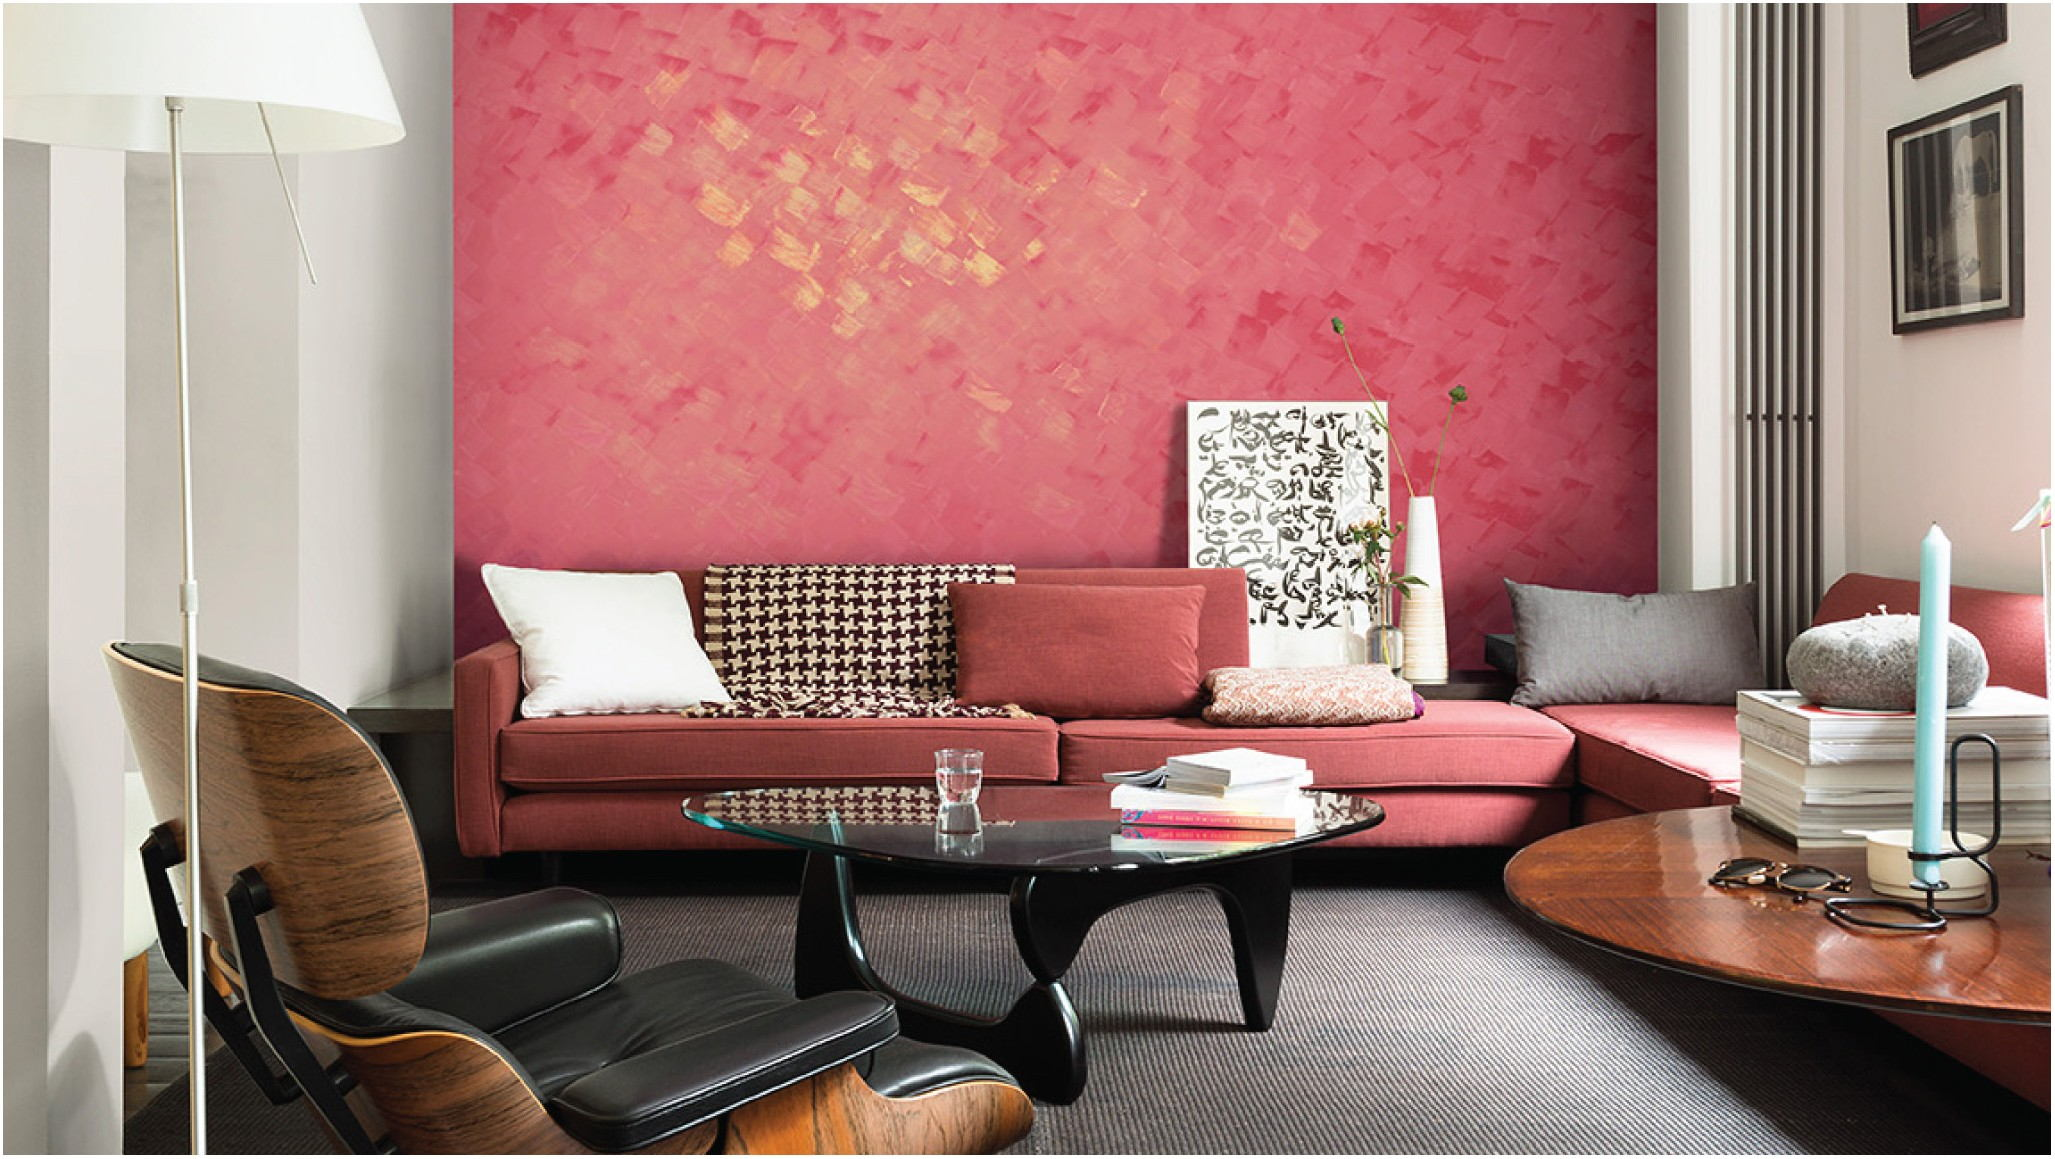 Dulux Texture Paint For Living Room